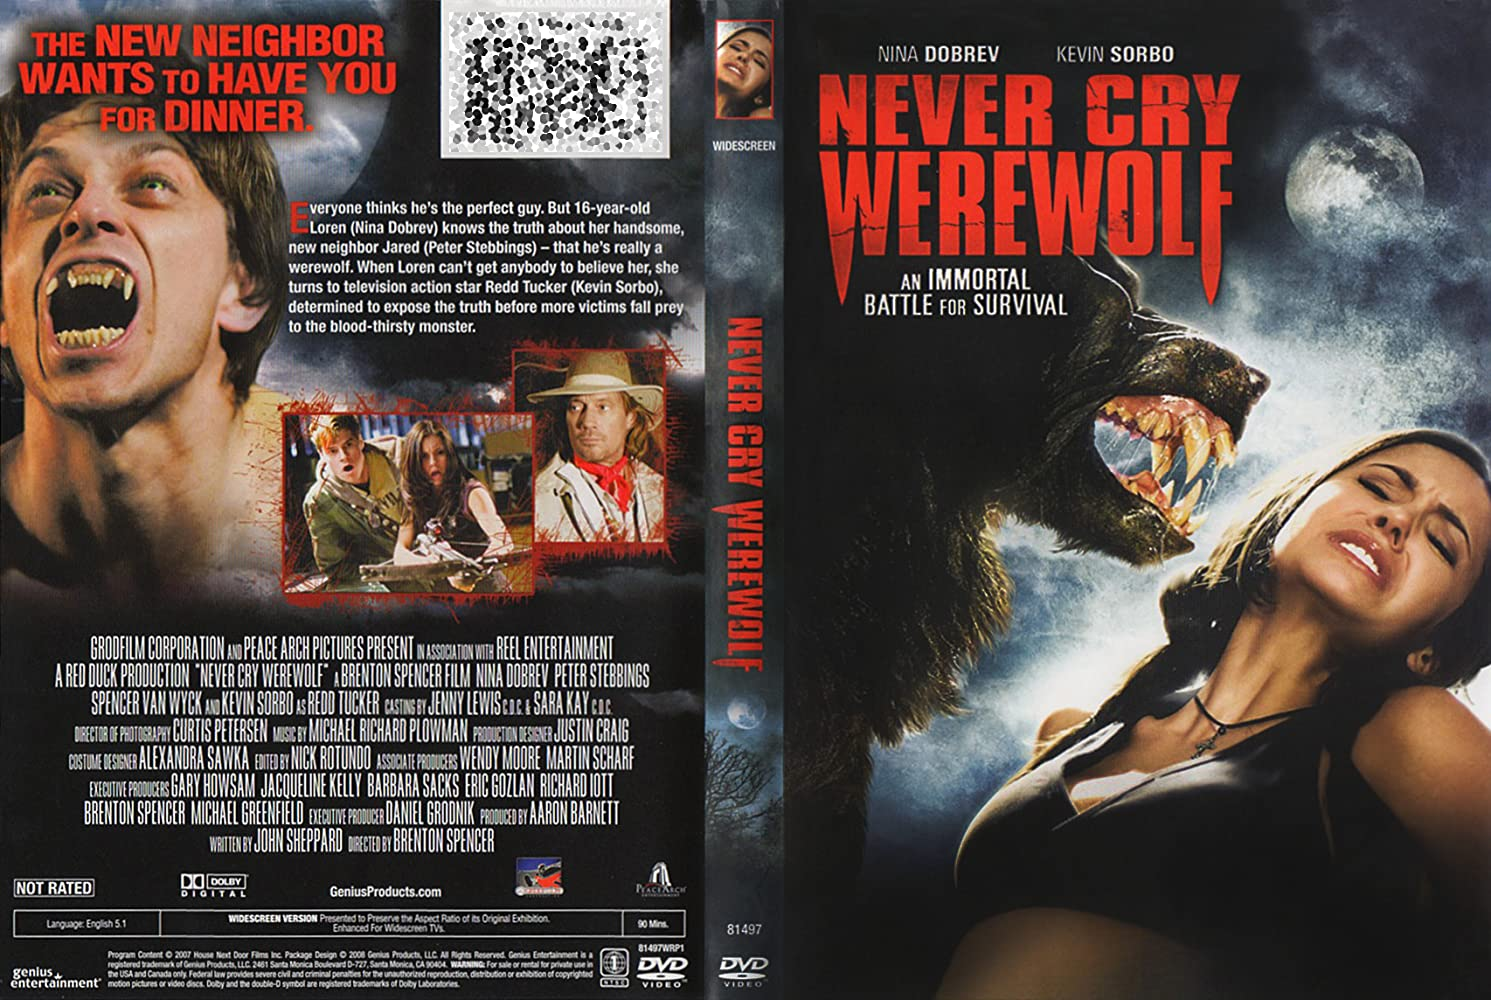 Valuable opinion Never cry werewolf healthy!